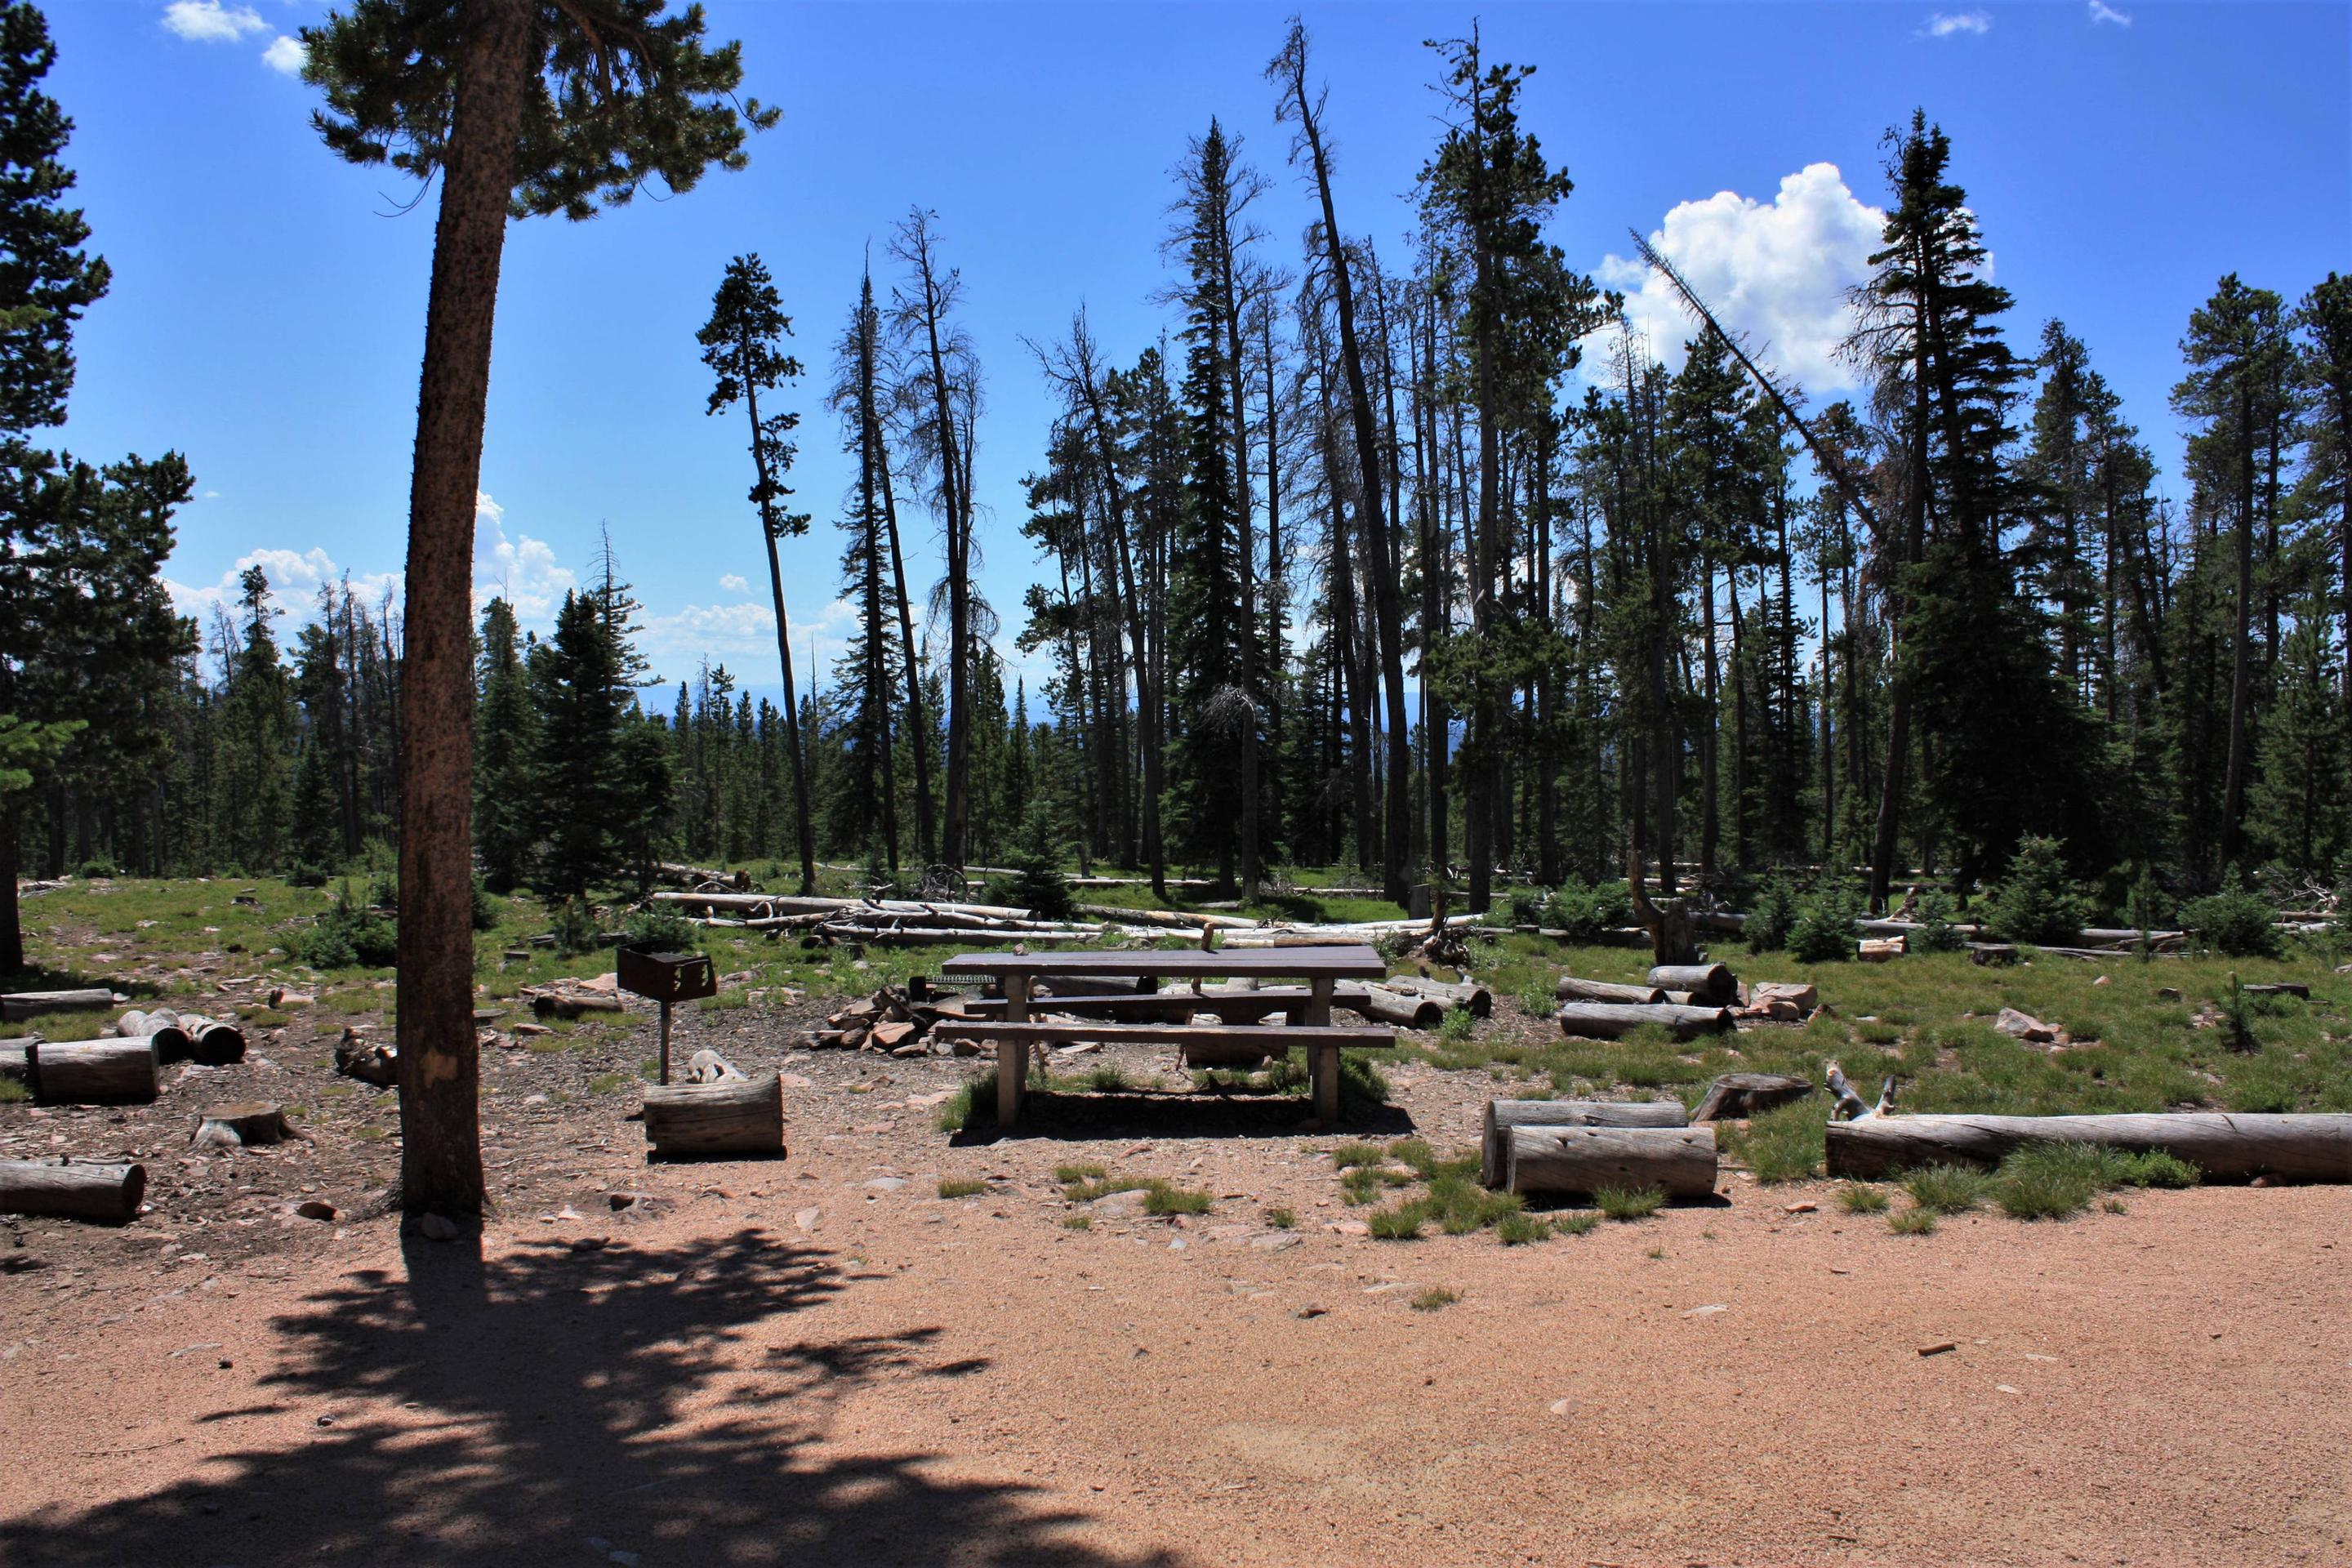 Spruce Mountain Fire Lookout Tower picnic area and fire pit